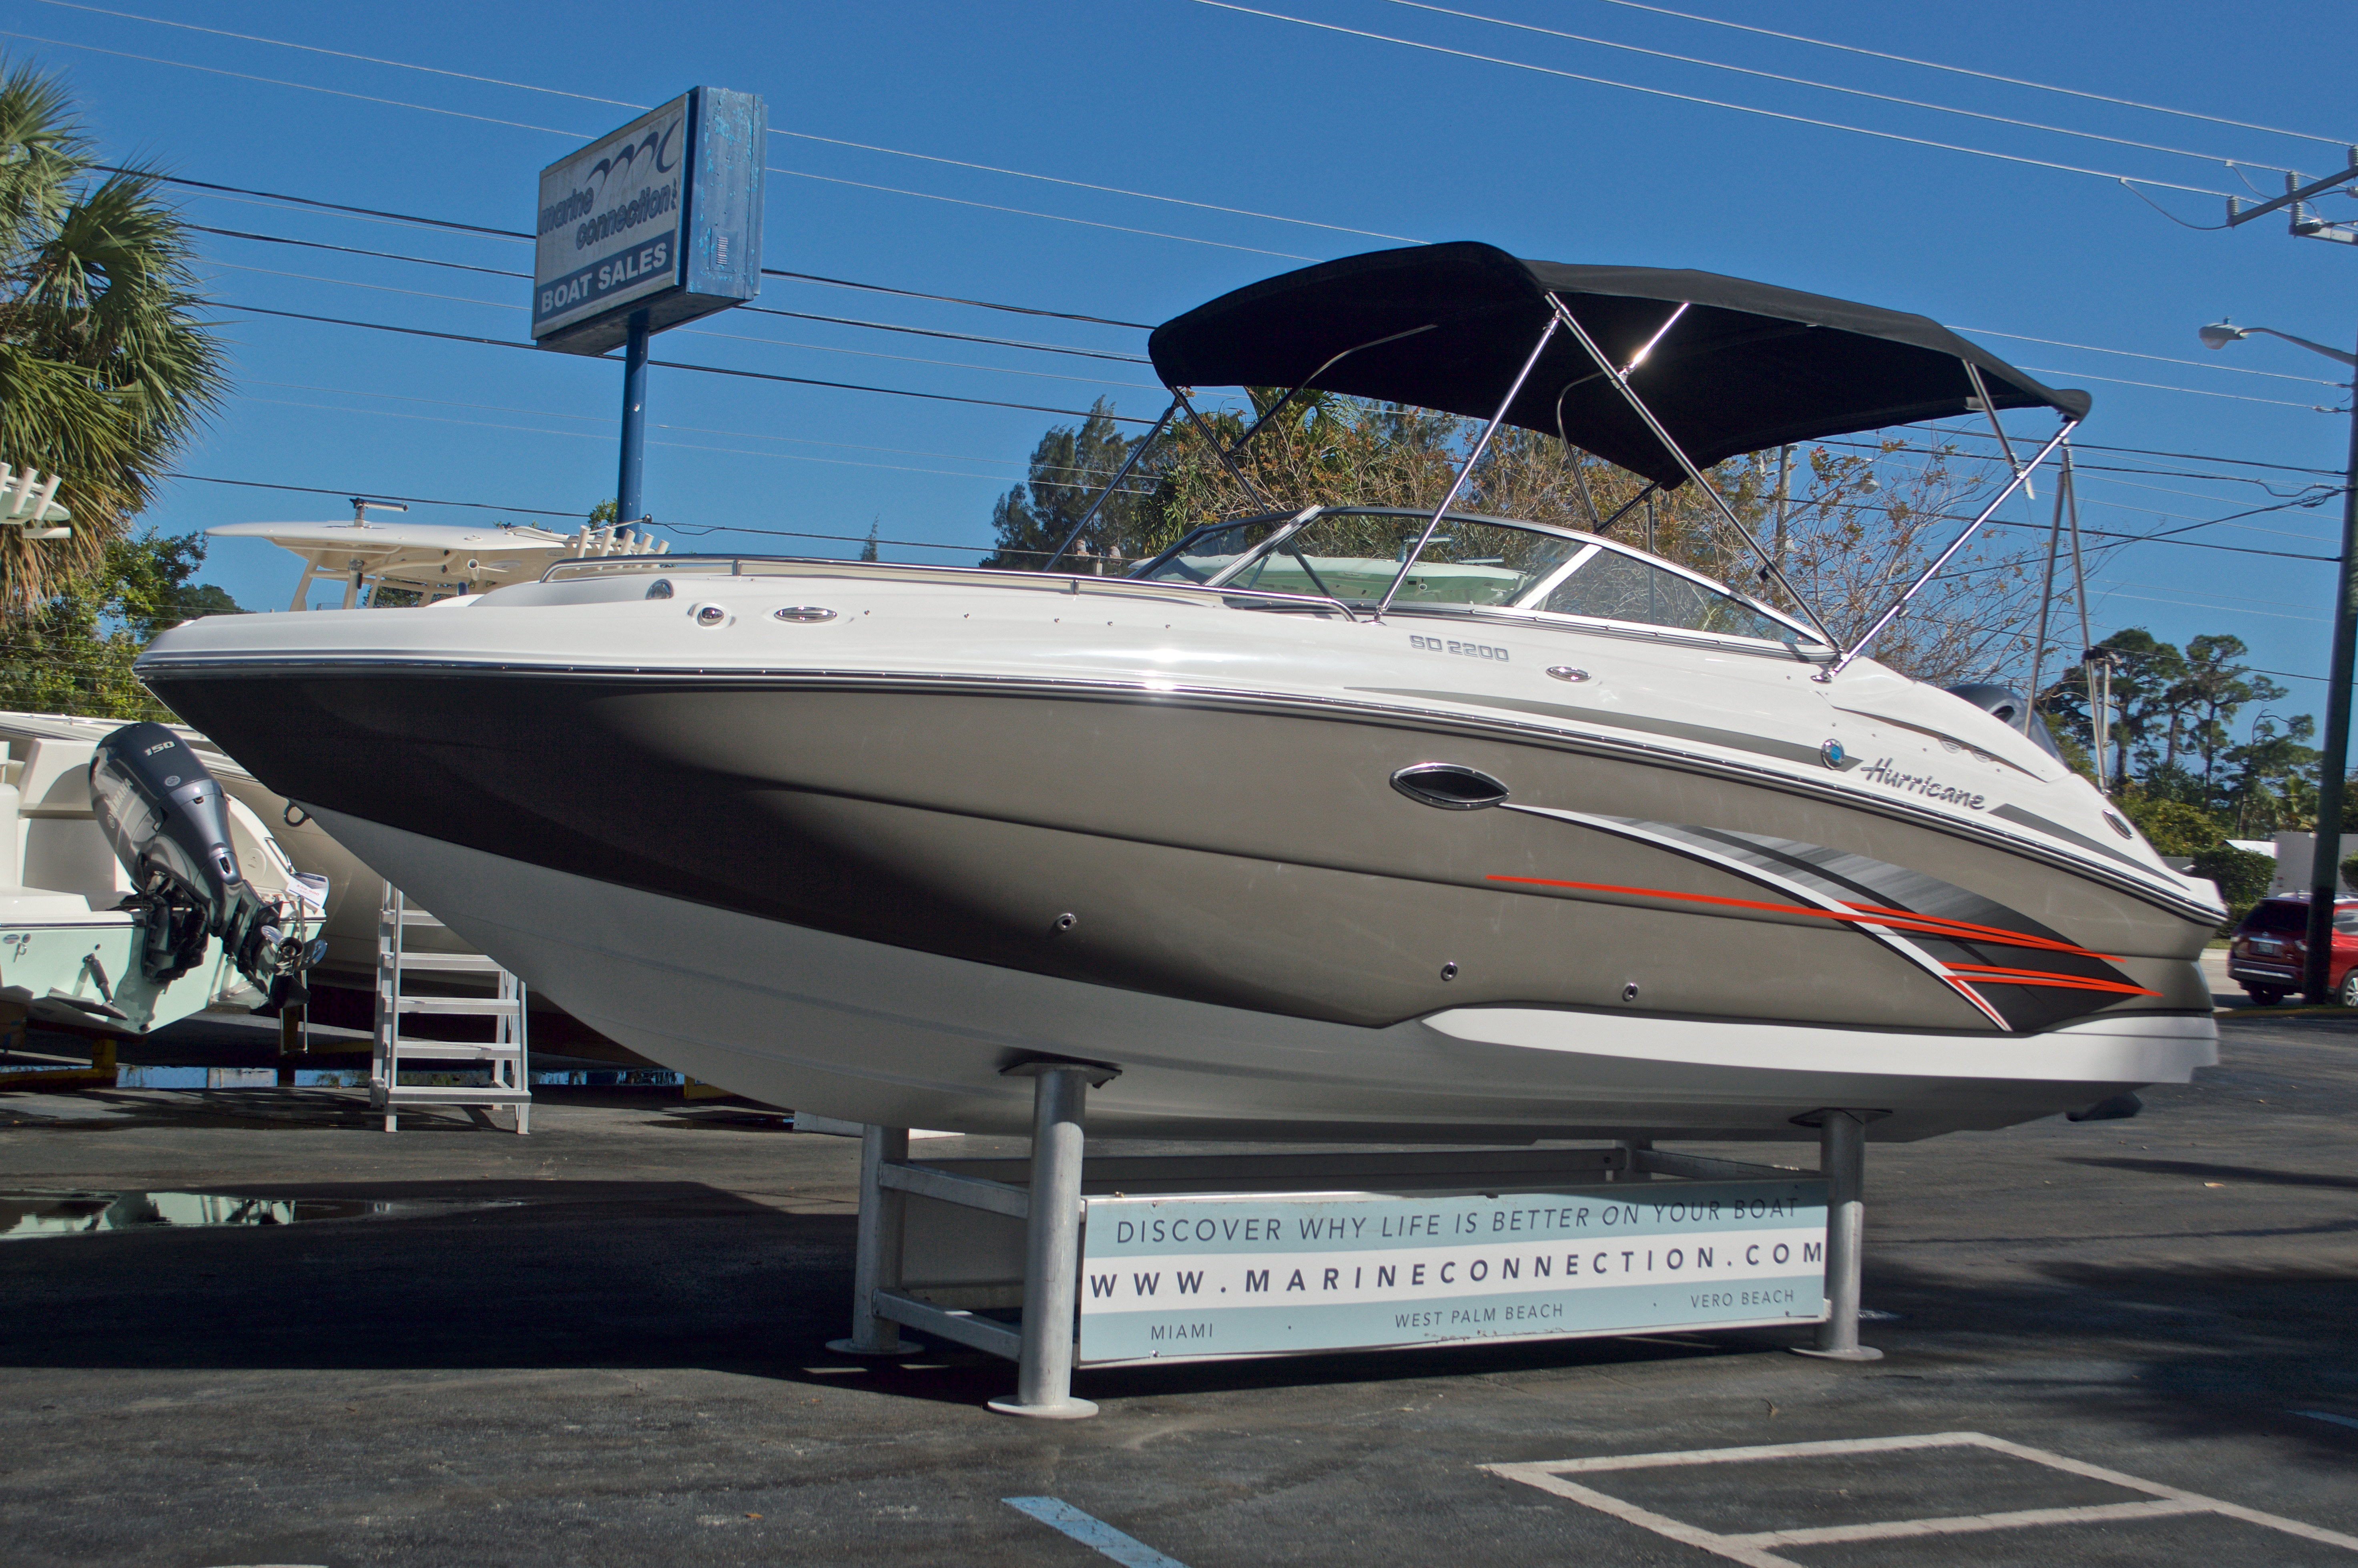 Thumbnail 3 for New 2017 Hurricane SunDeck SD 2200 OB boat for sale in West Palm Beach, FL